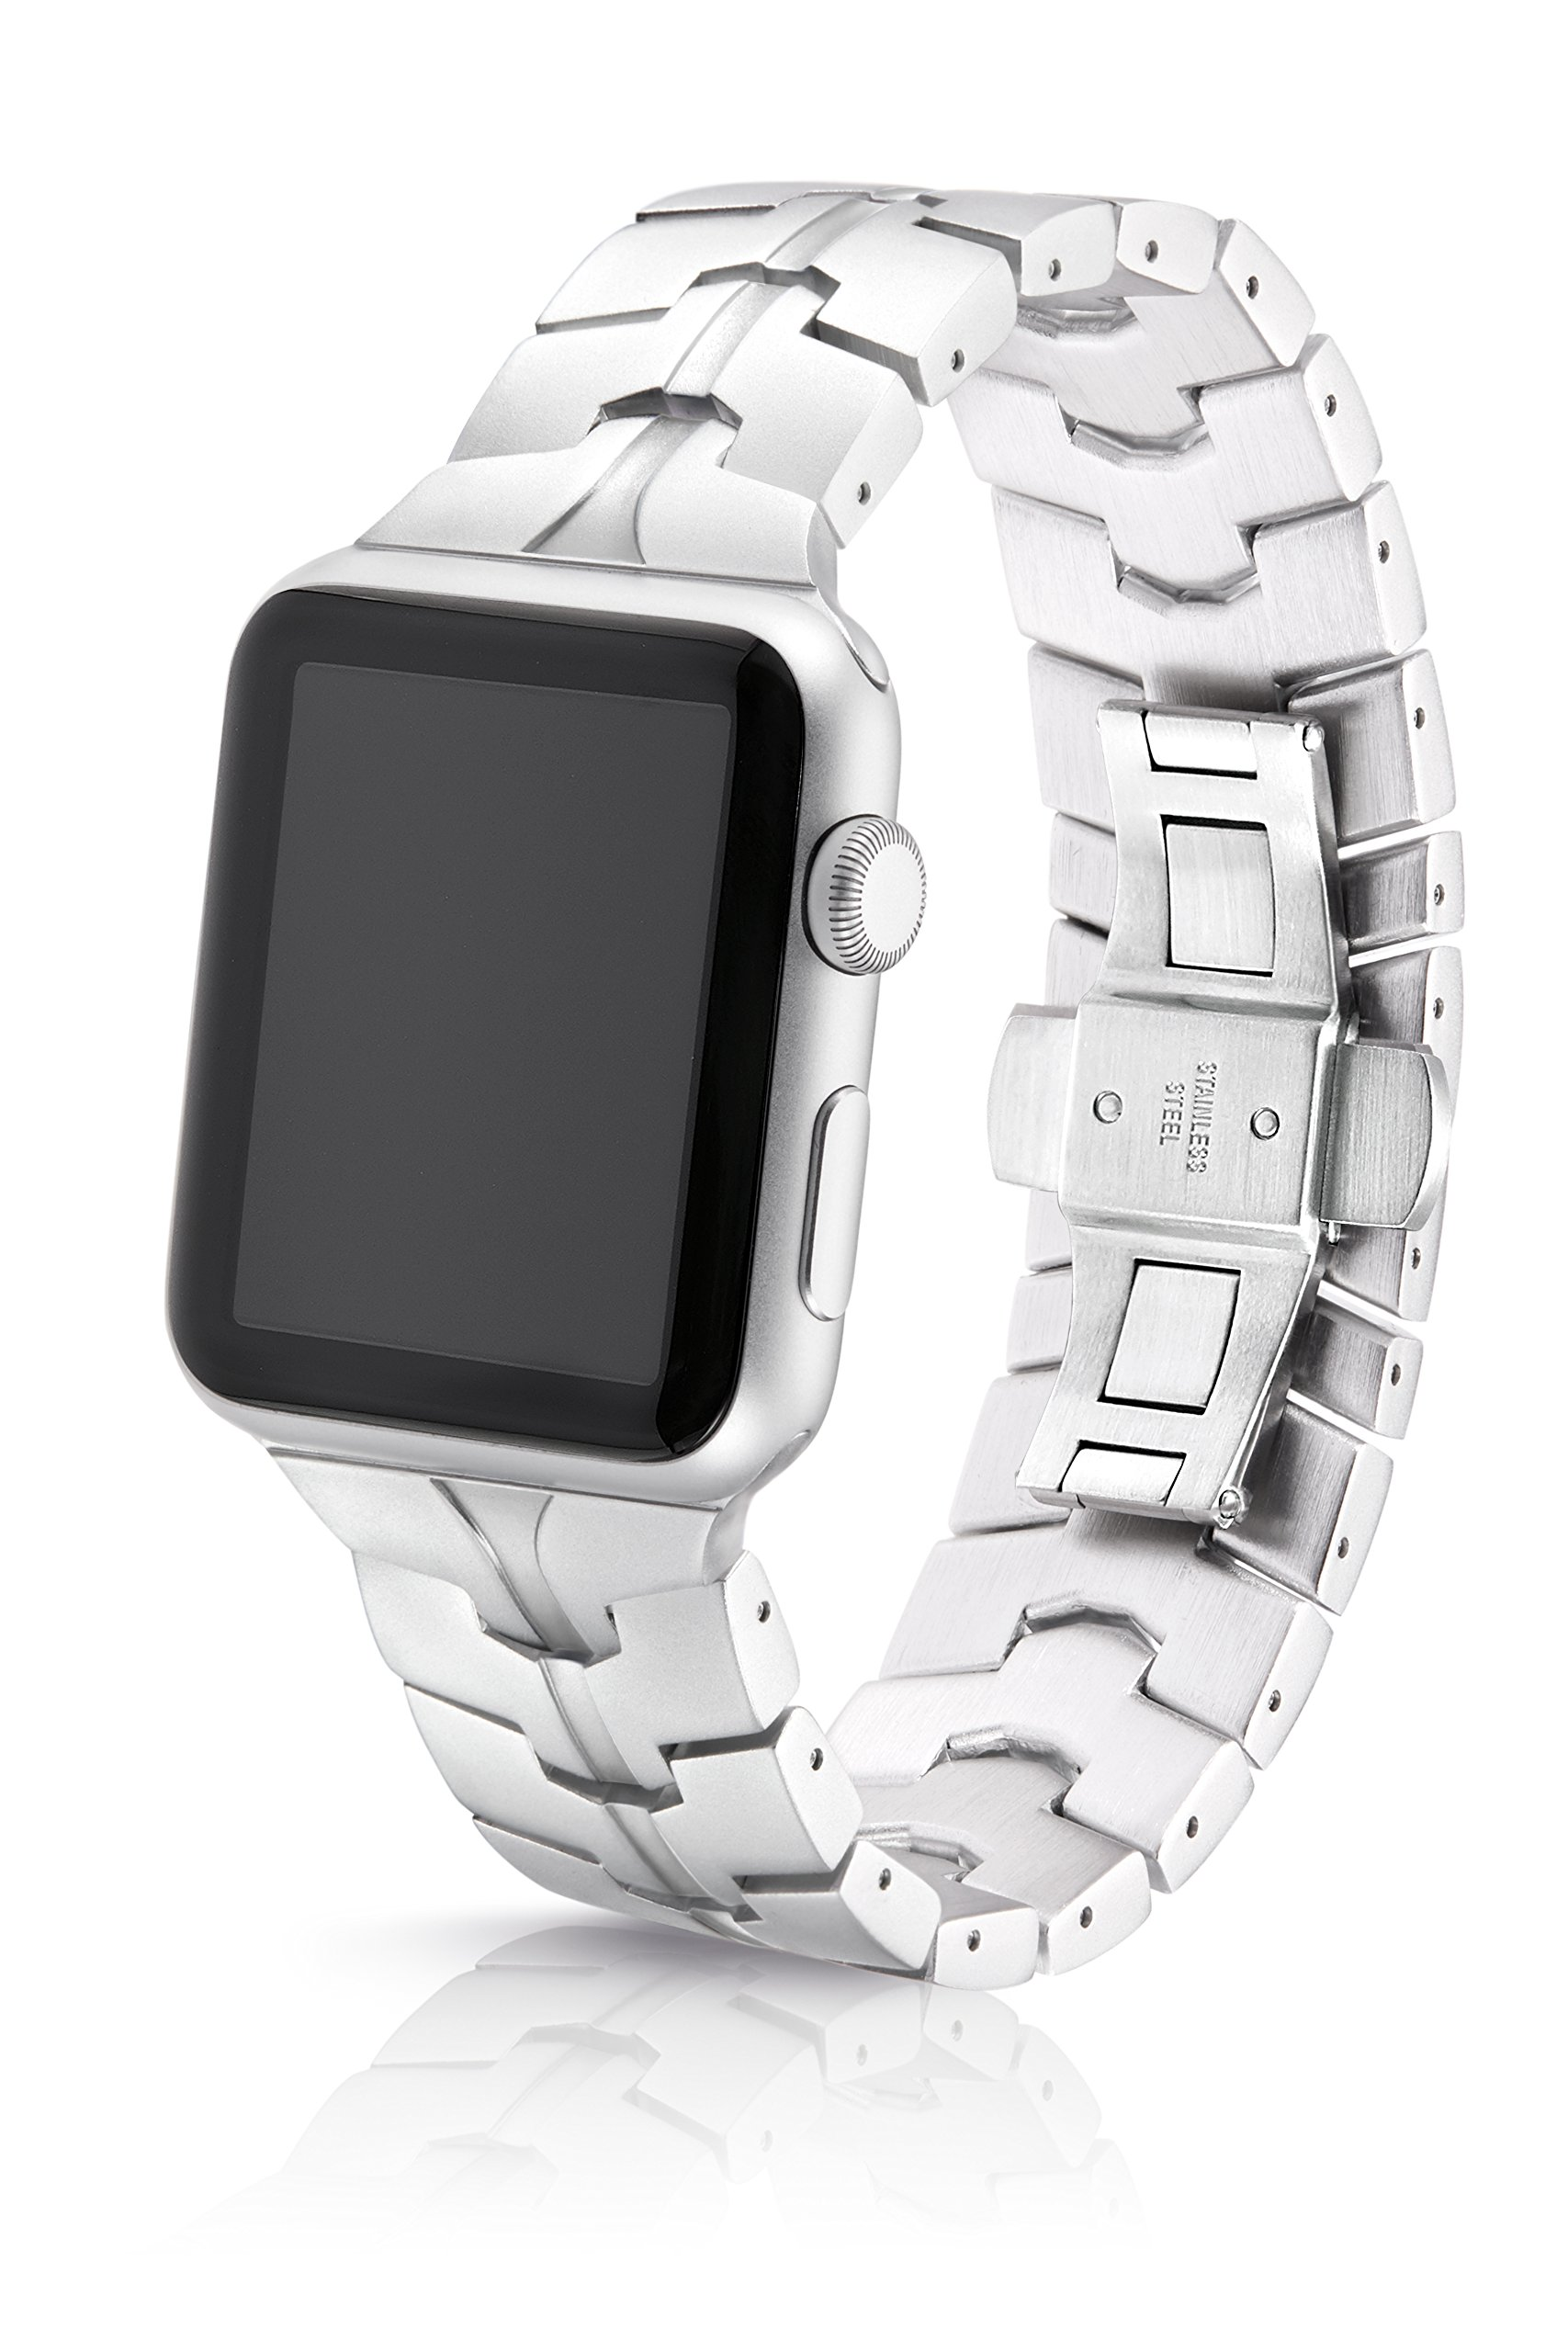 42/44mm JUUK Silver Vitero Premium Watch Band Made for The Apple Watch, Using Aircraft Grade, Hard Anodized 6000 Series Aluminum with a Solid Stainless Steel Butterfly deployant Buckle (Matte)